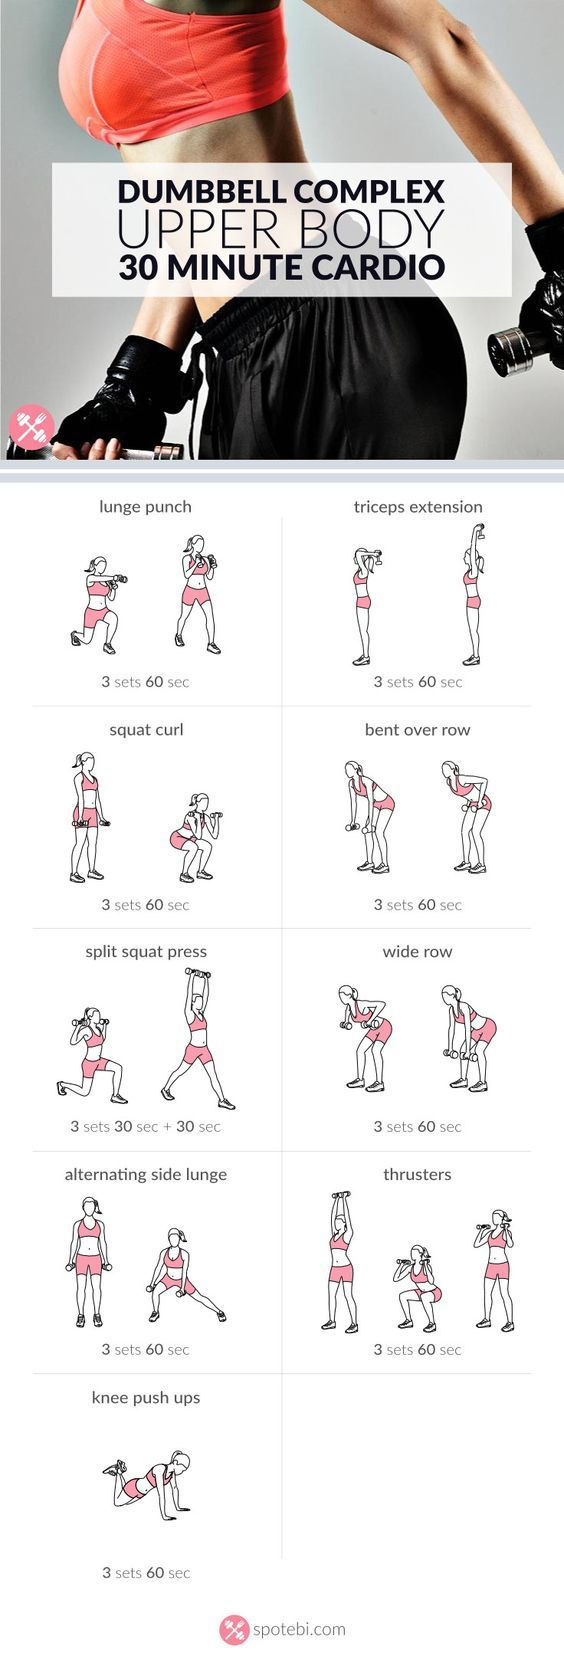 Quickly transform your upper body with this 30 minute cardio routine for women. A dumbbell workout to tone and tighten your arms, chest, back and shoulders. http://www.spotebi.com/workout-routines/30-minute-cardio-upper-body-dumbbell-workout/: